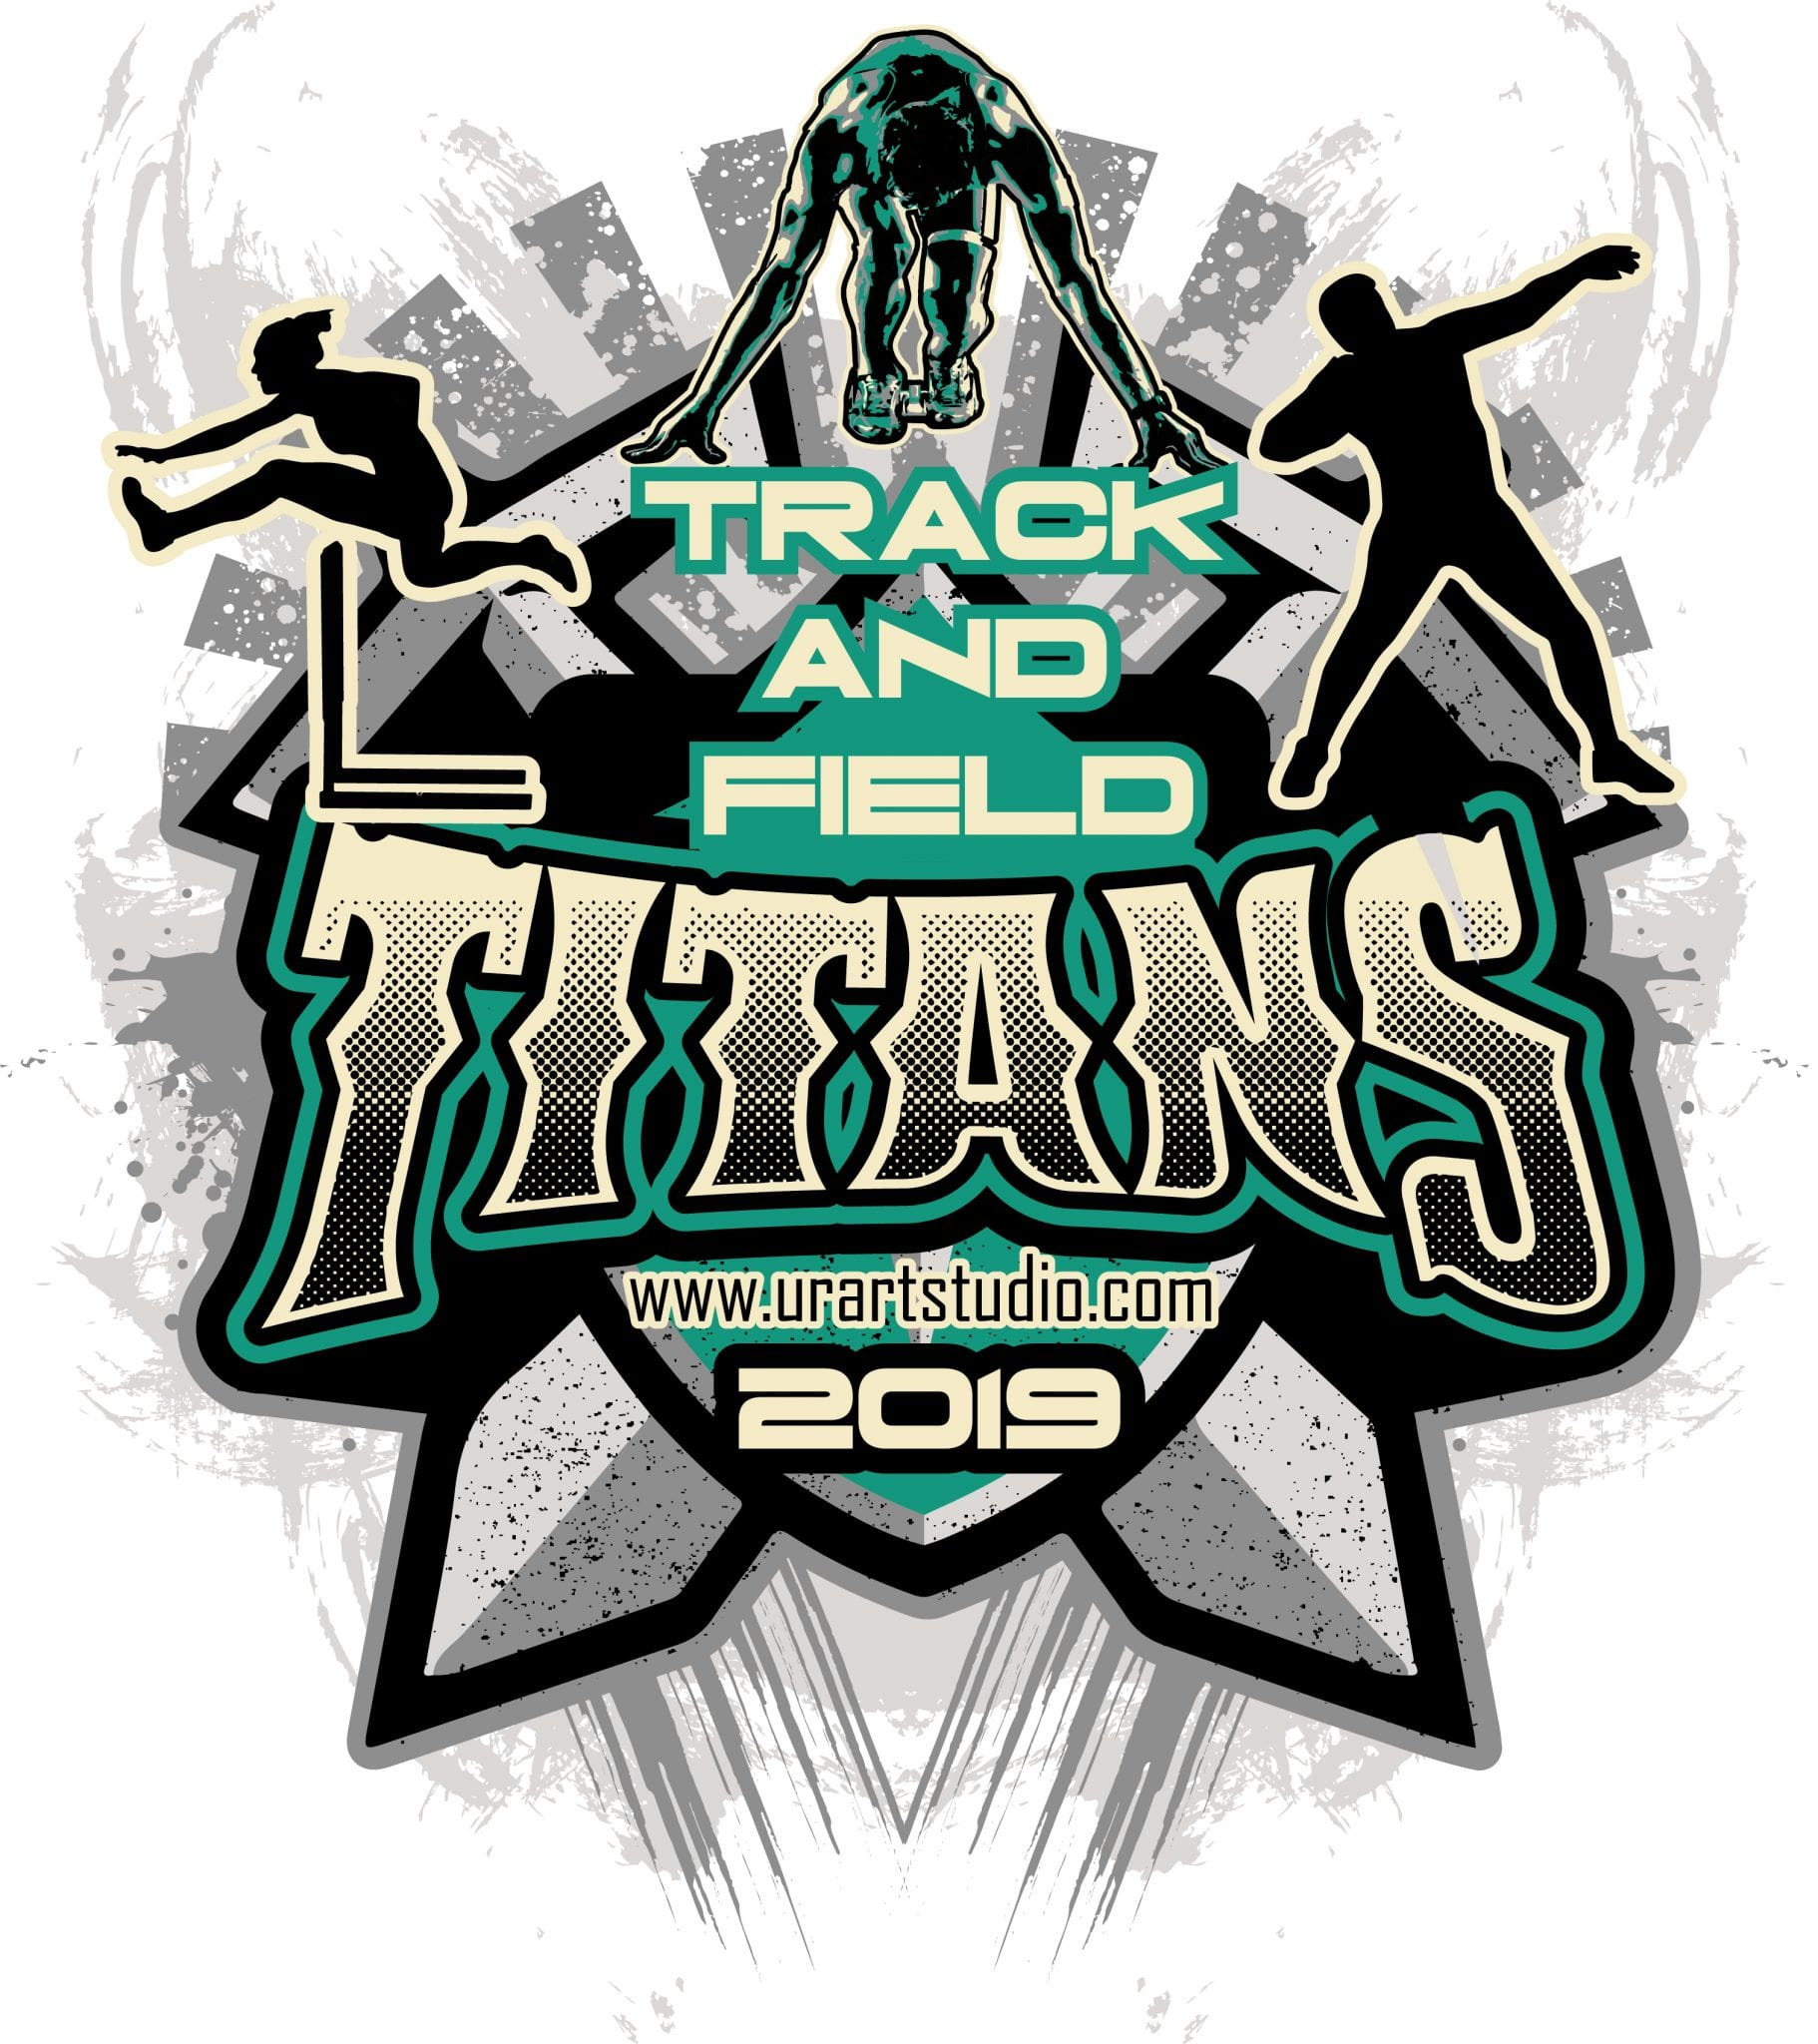 TRACK AND FIELD TITANS customizable T-shirt vector logo design for print 2019